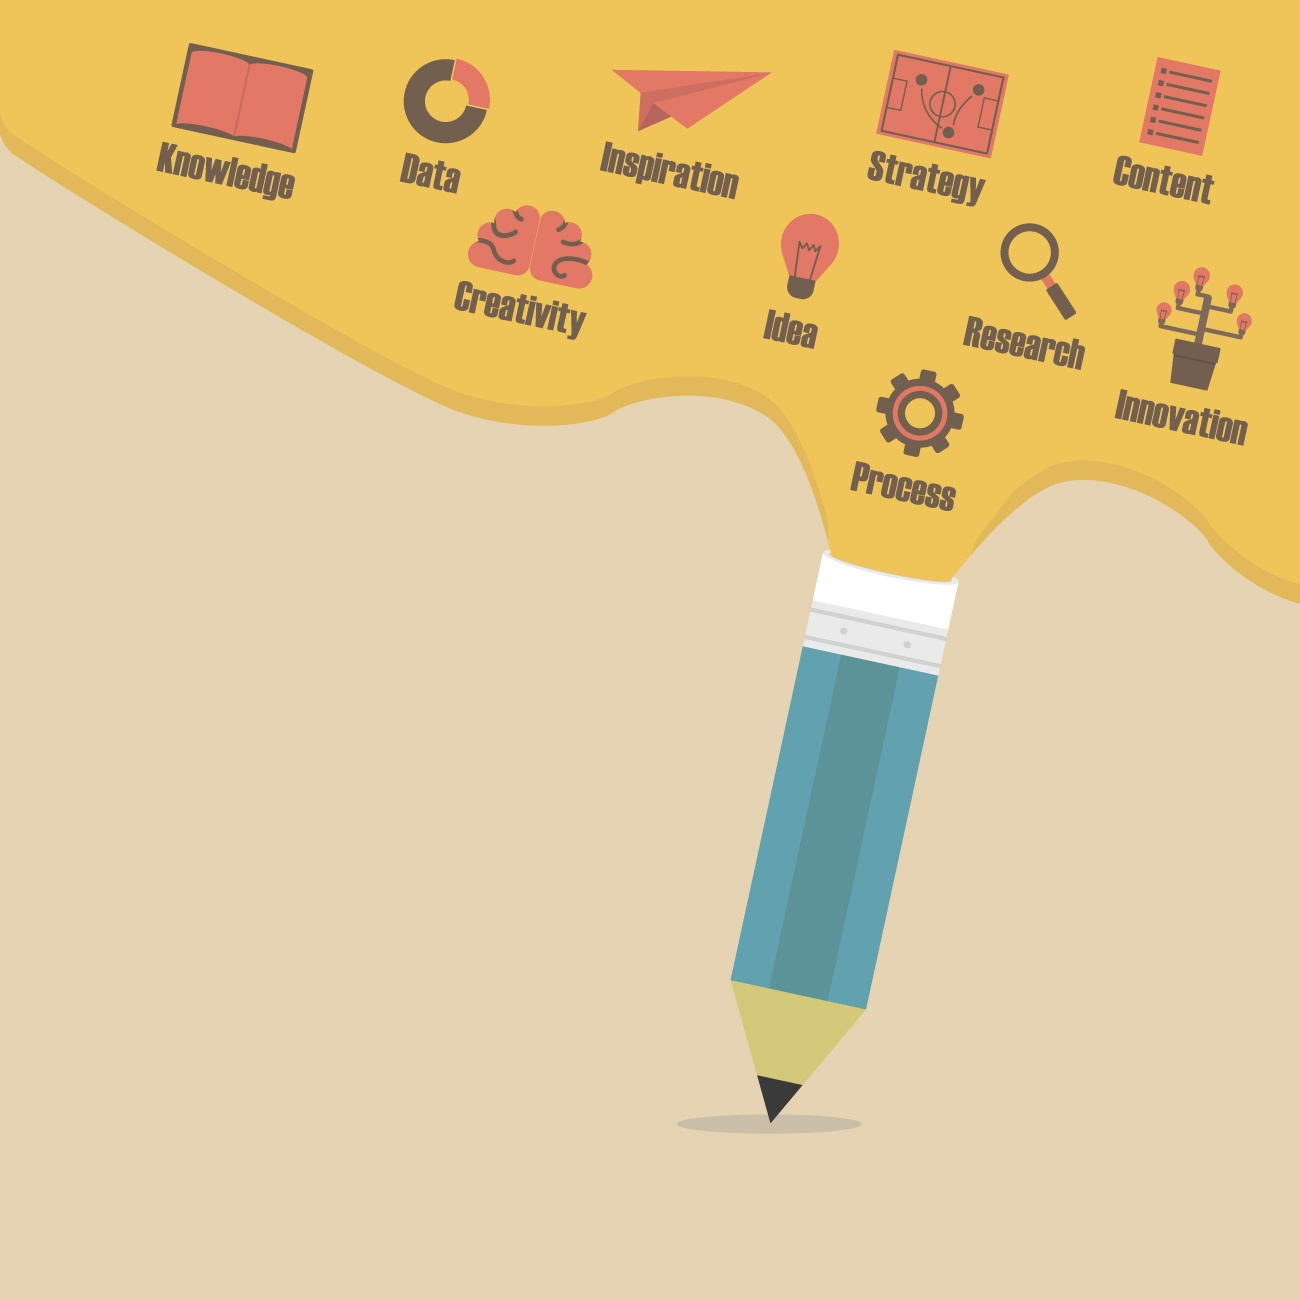 How to Build Content to Keep Audience Engaged